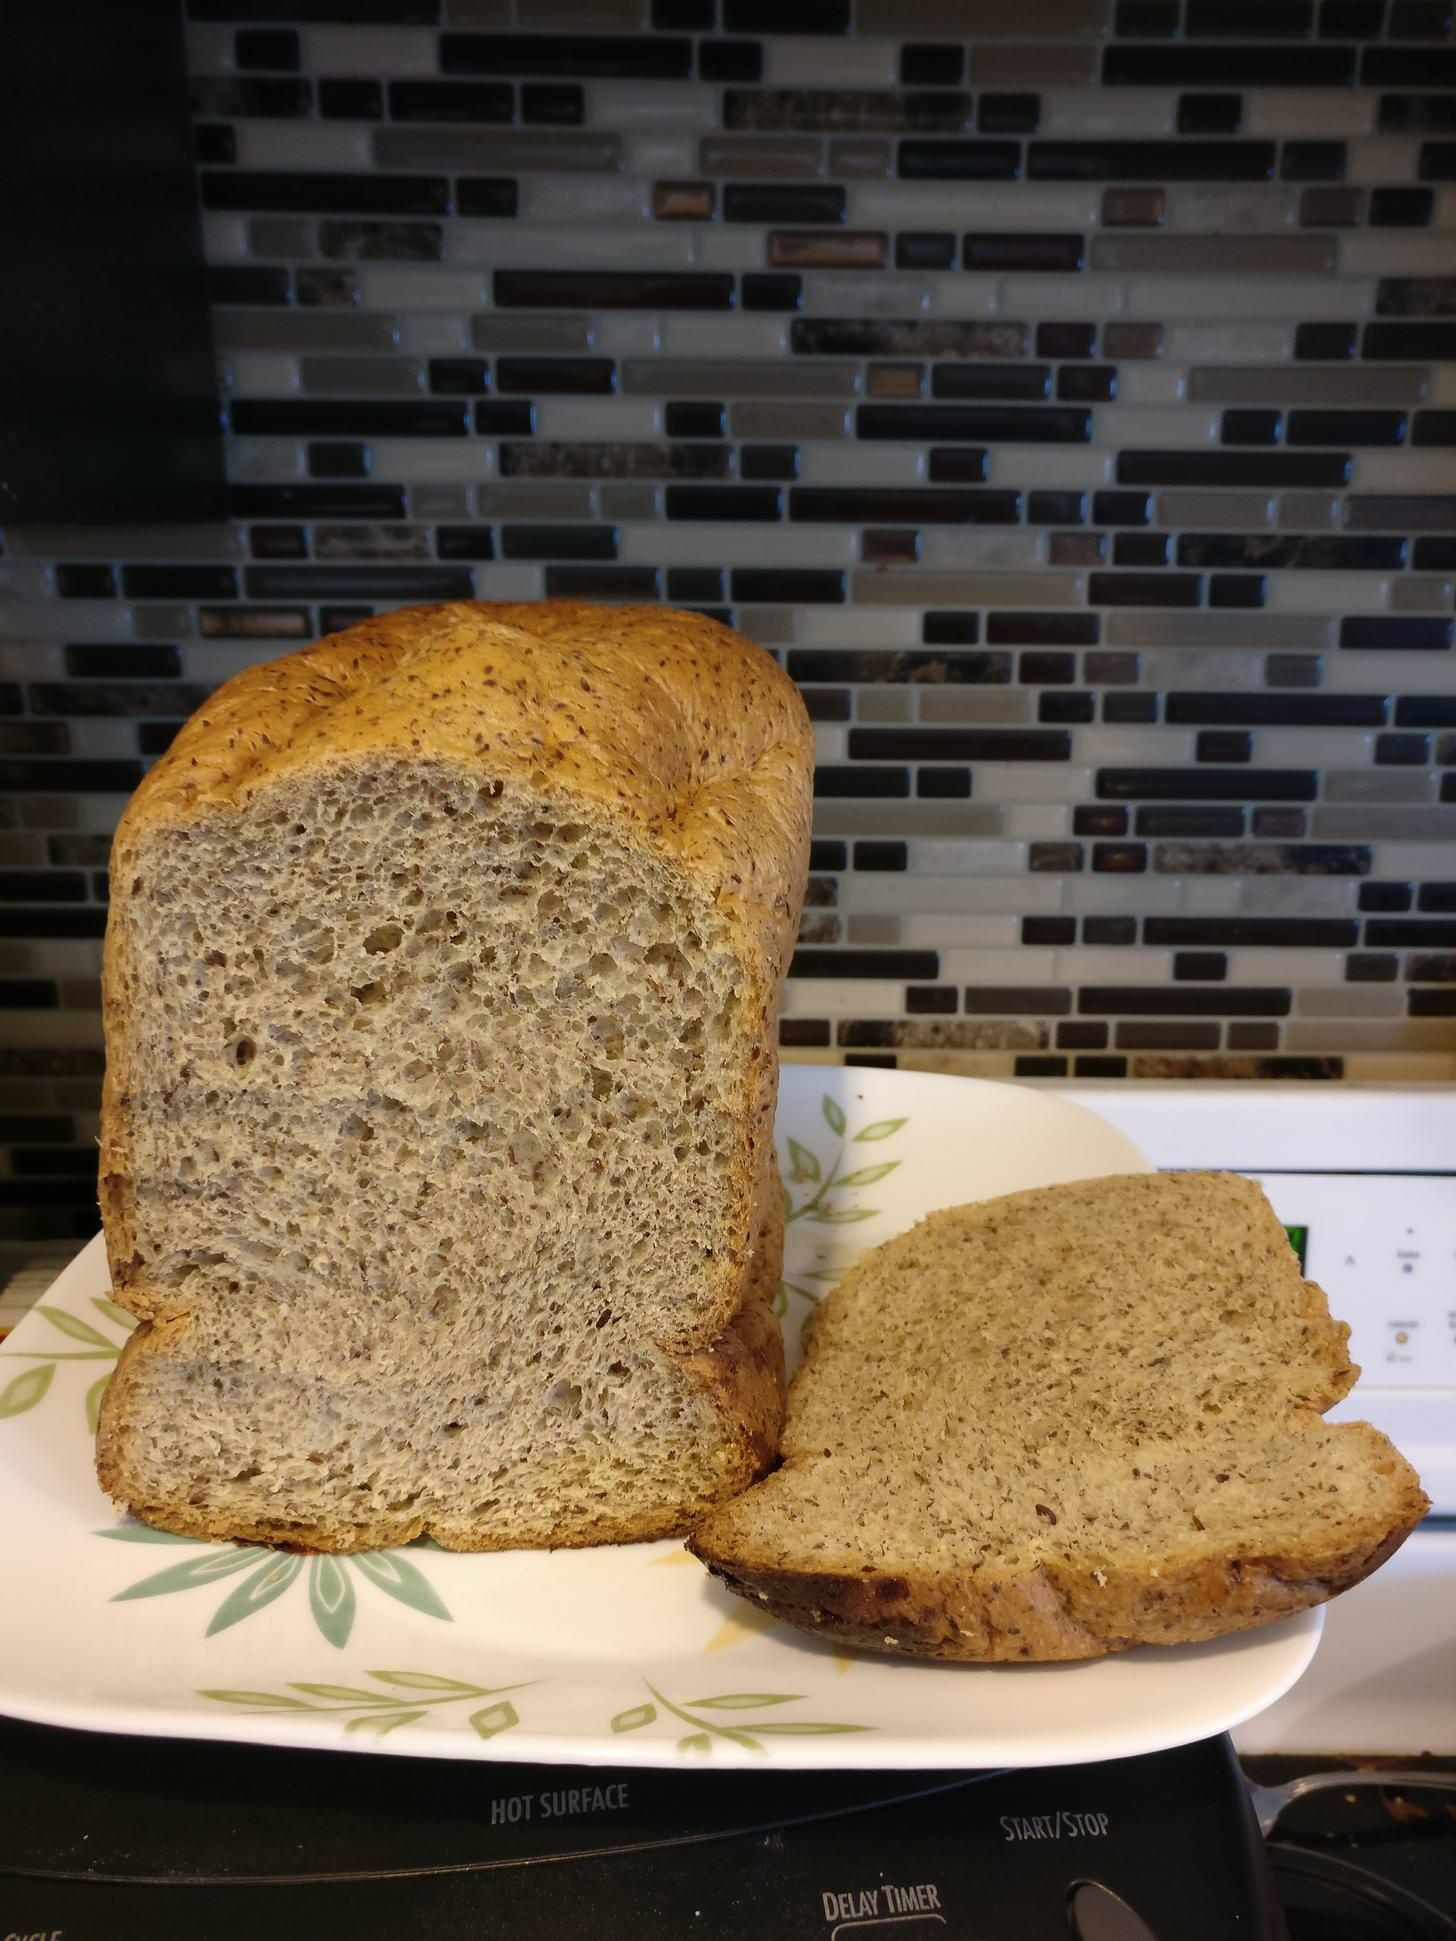 Low Carb Bread Machine Recipes  Low carb keto bread from a bread machine